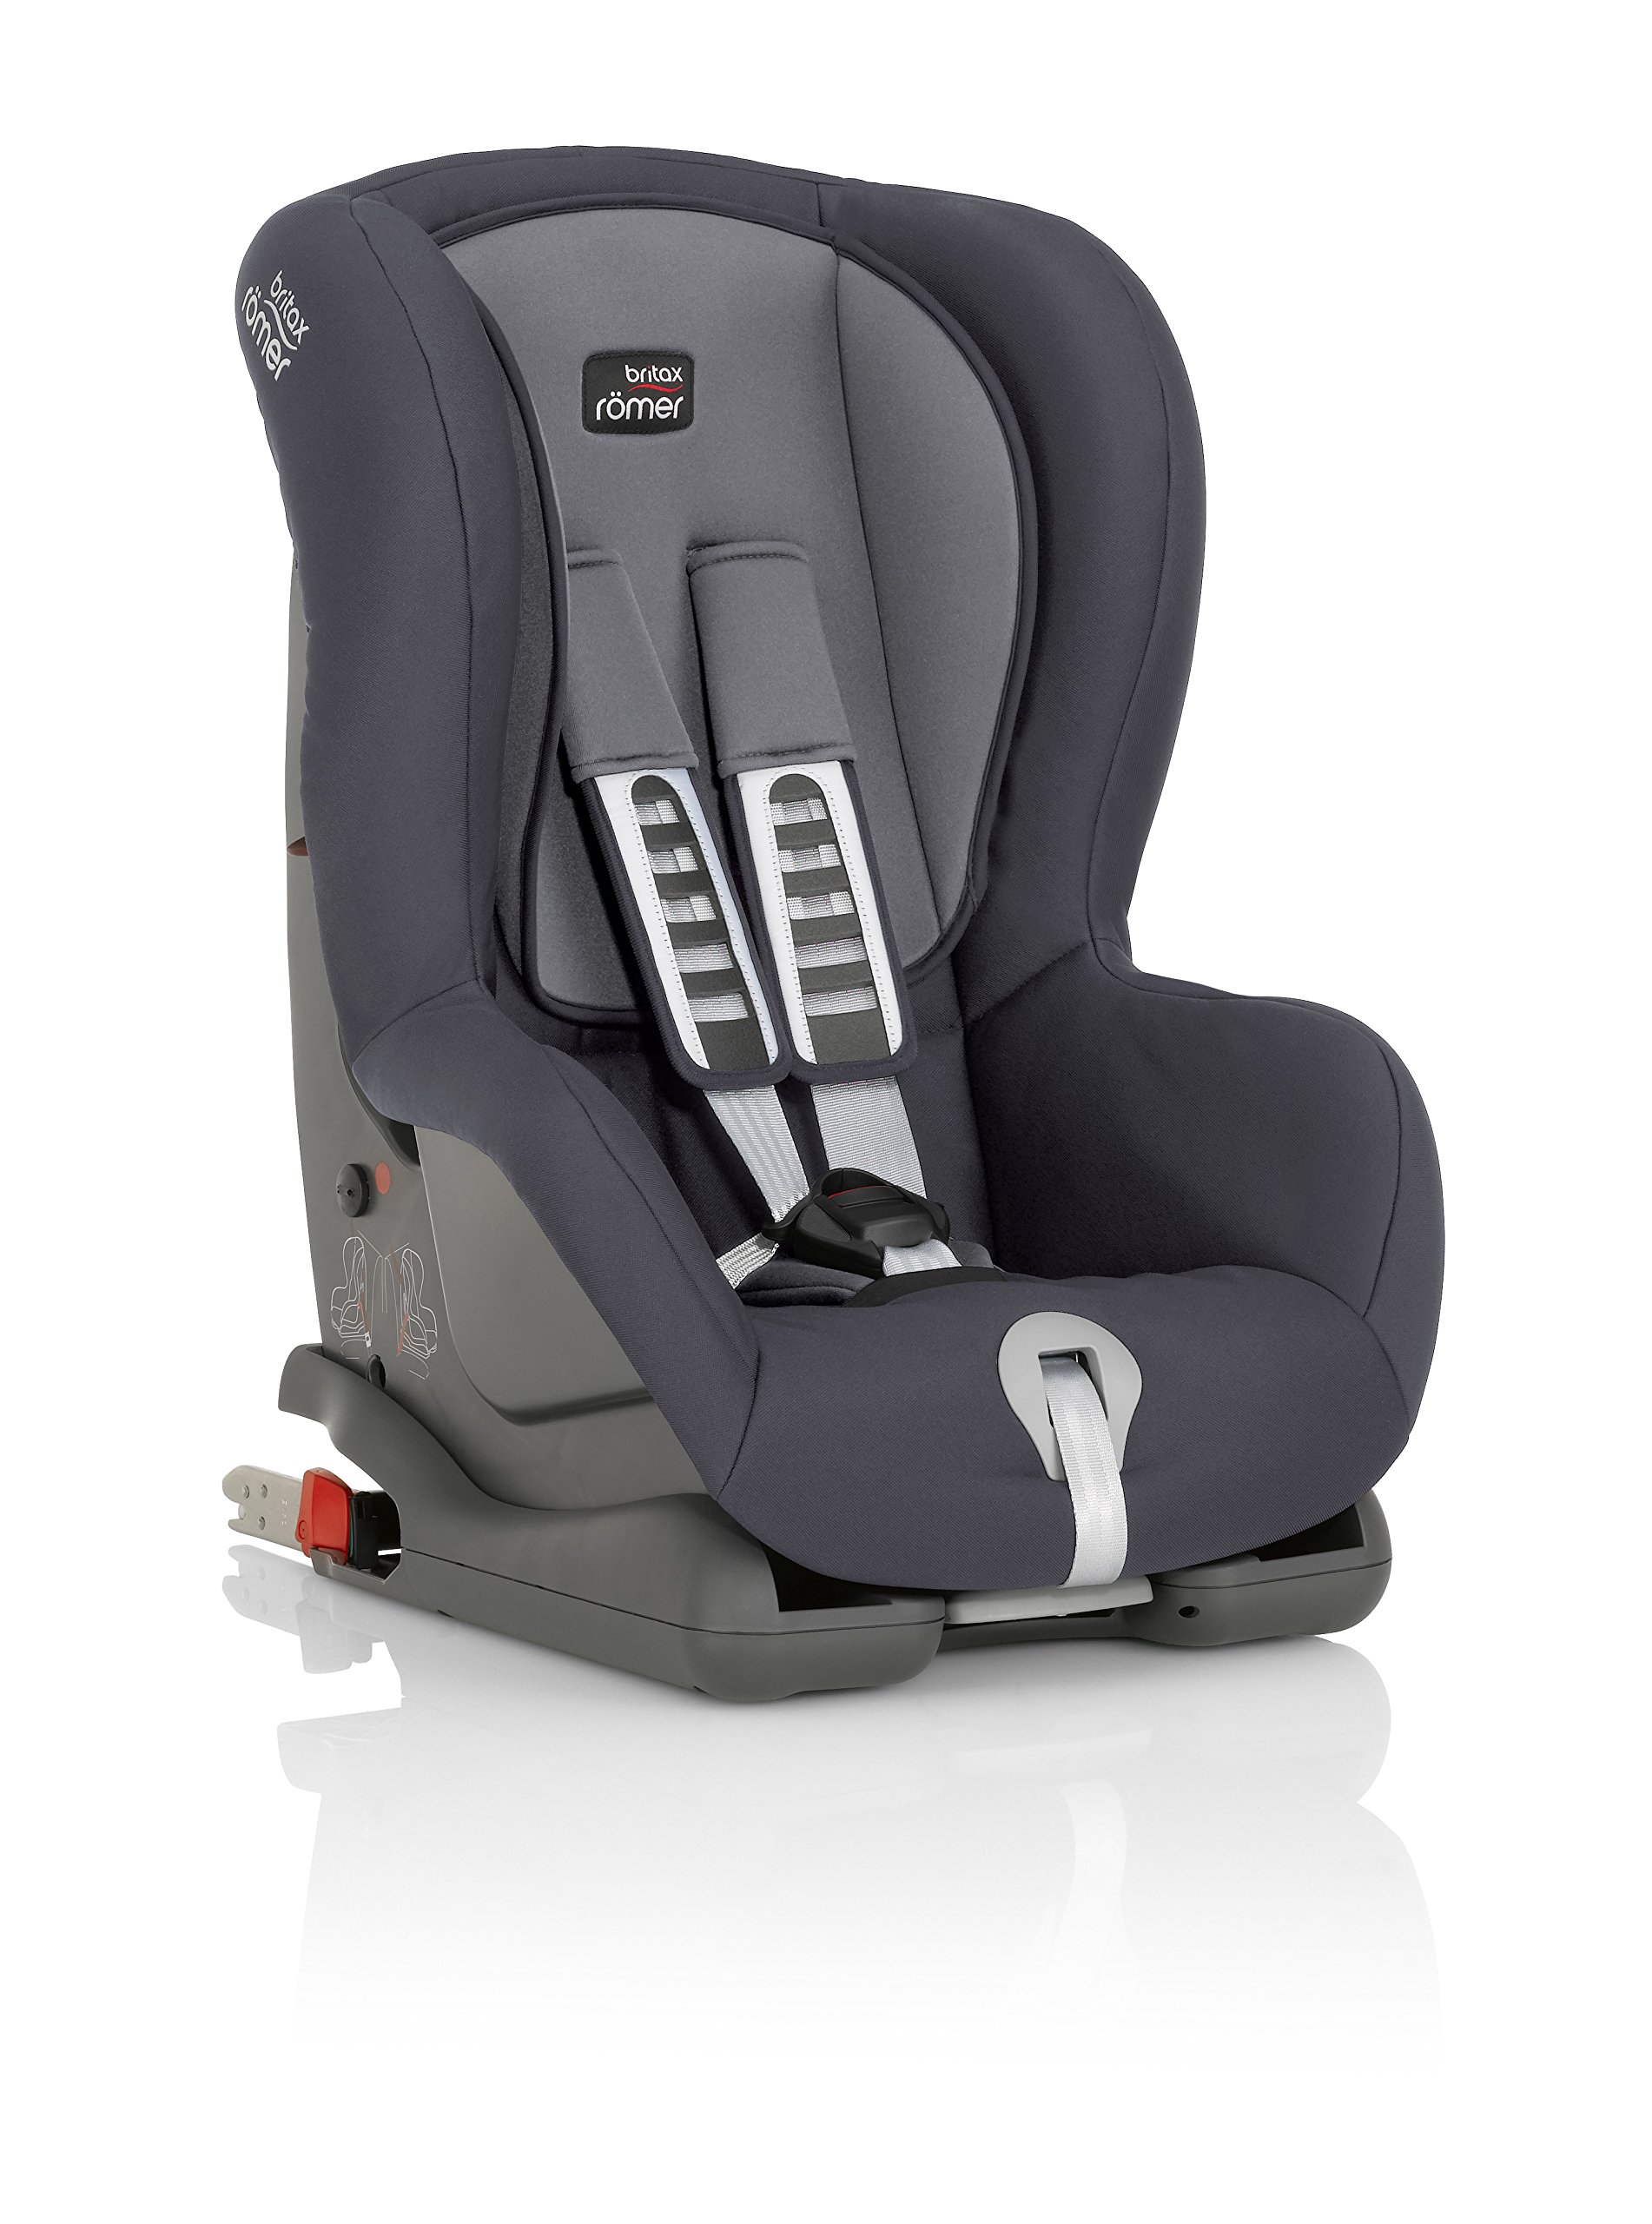 Britax Römer car seat, DUO PLUS Isofix group 1 (9-18 kg),Storm Grey Britax Römer Compatible with ISOFIX or 3-point seat belt installation this seat caters to any car Comfort without compromise - deep, padded side wings and multi-position recline Pivot link system to reduce forward movement in the event of an accident 4